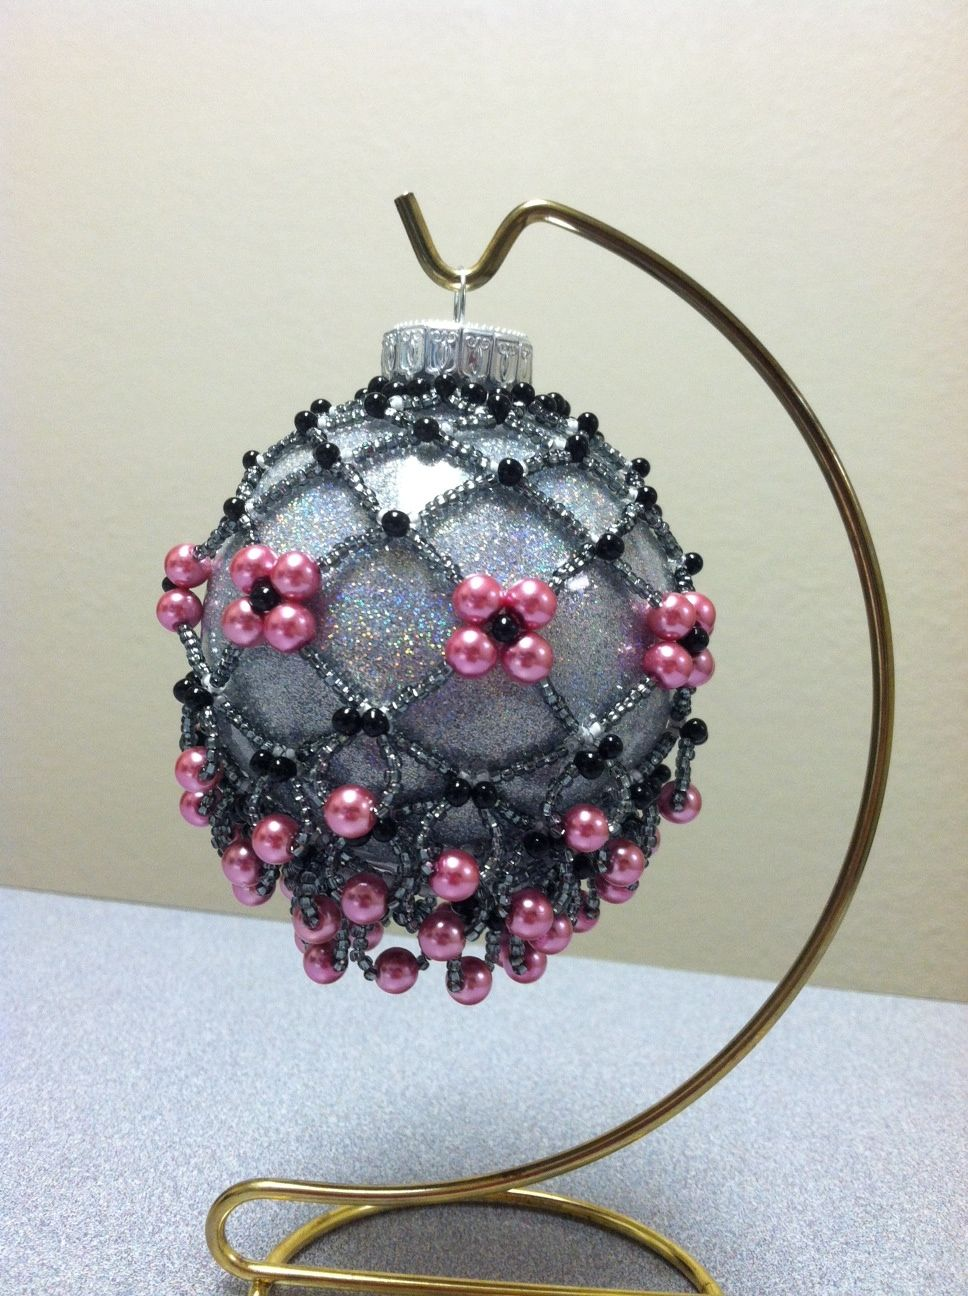 Beaded Ornament Cover Champagne Ornament Pattern Is From Bead And Button B Beaded Ornament Covers Homemade Christmas Ornaments Diy Beaded Christmas Decorations